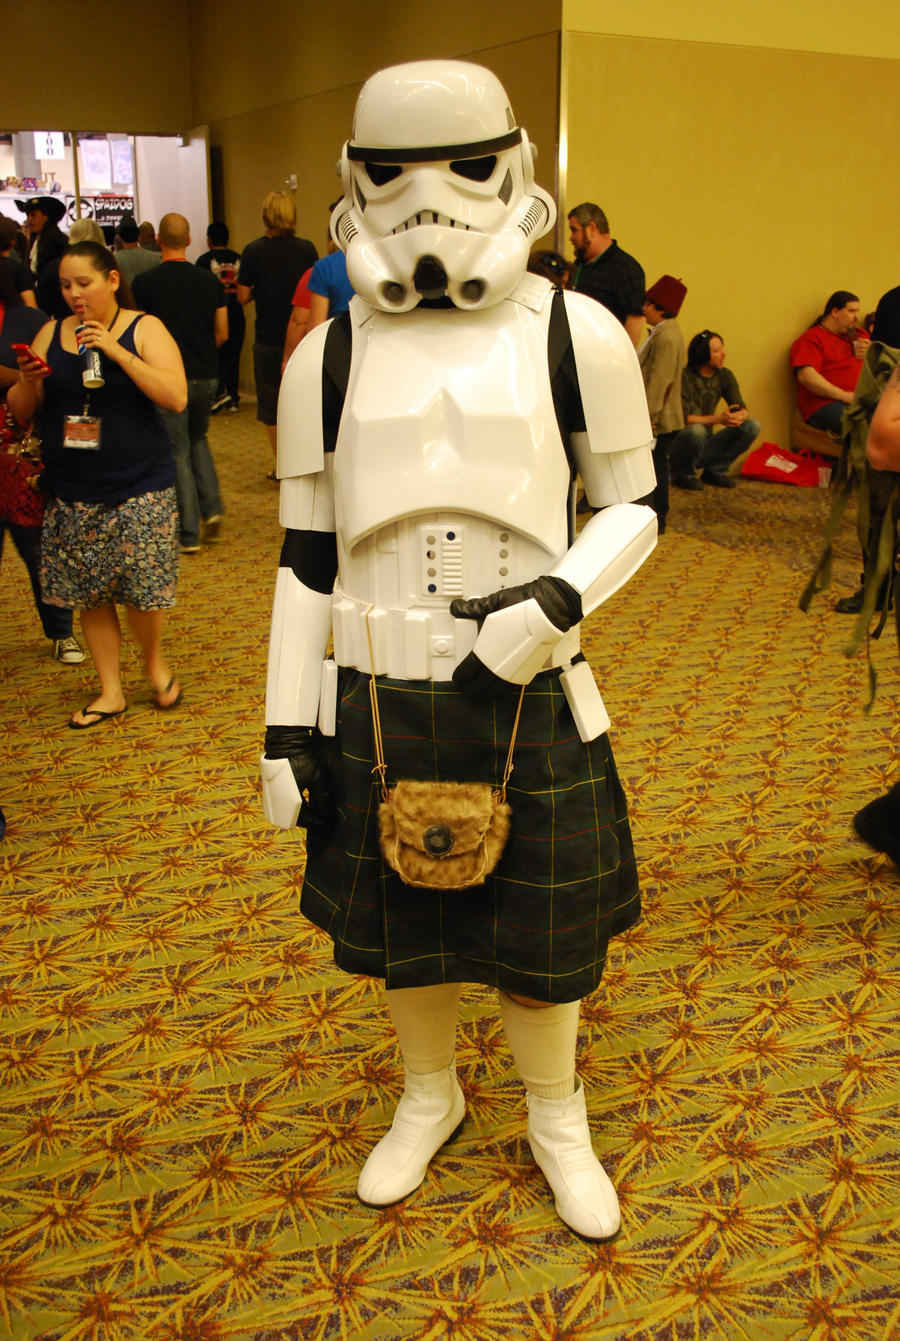 [Image: scottish_storm_trooper_by_allild-d51xfh7.jpg]